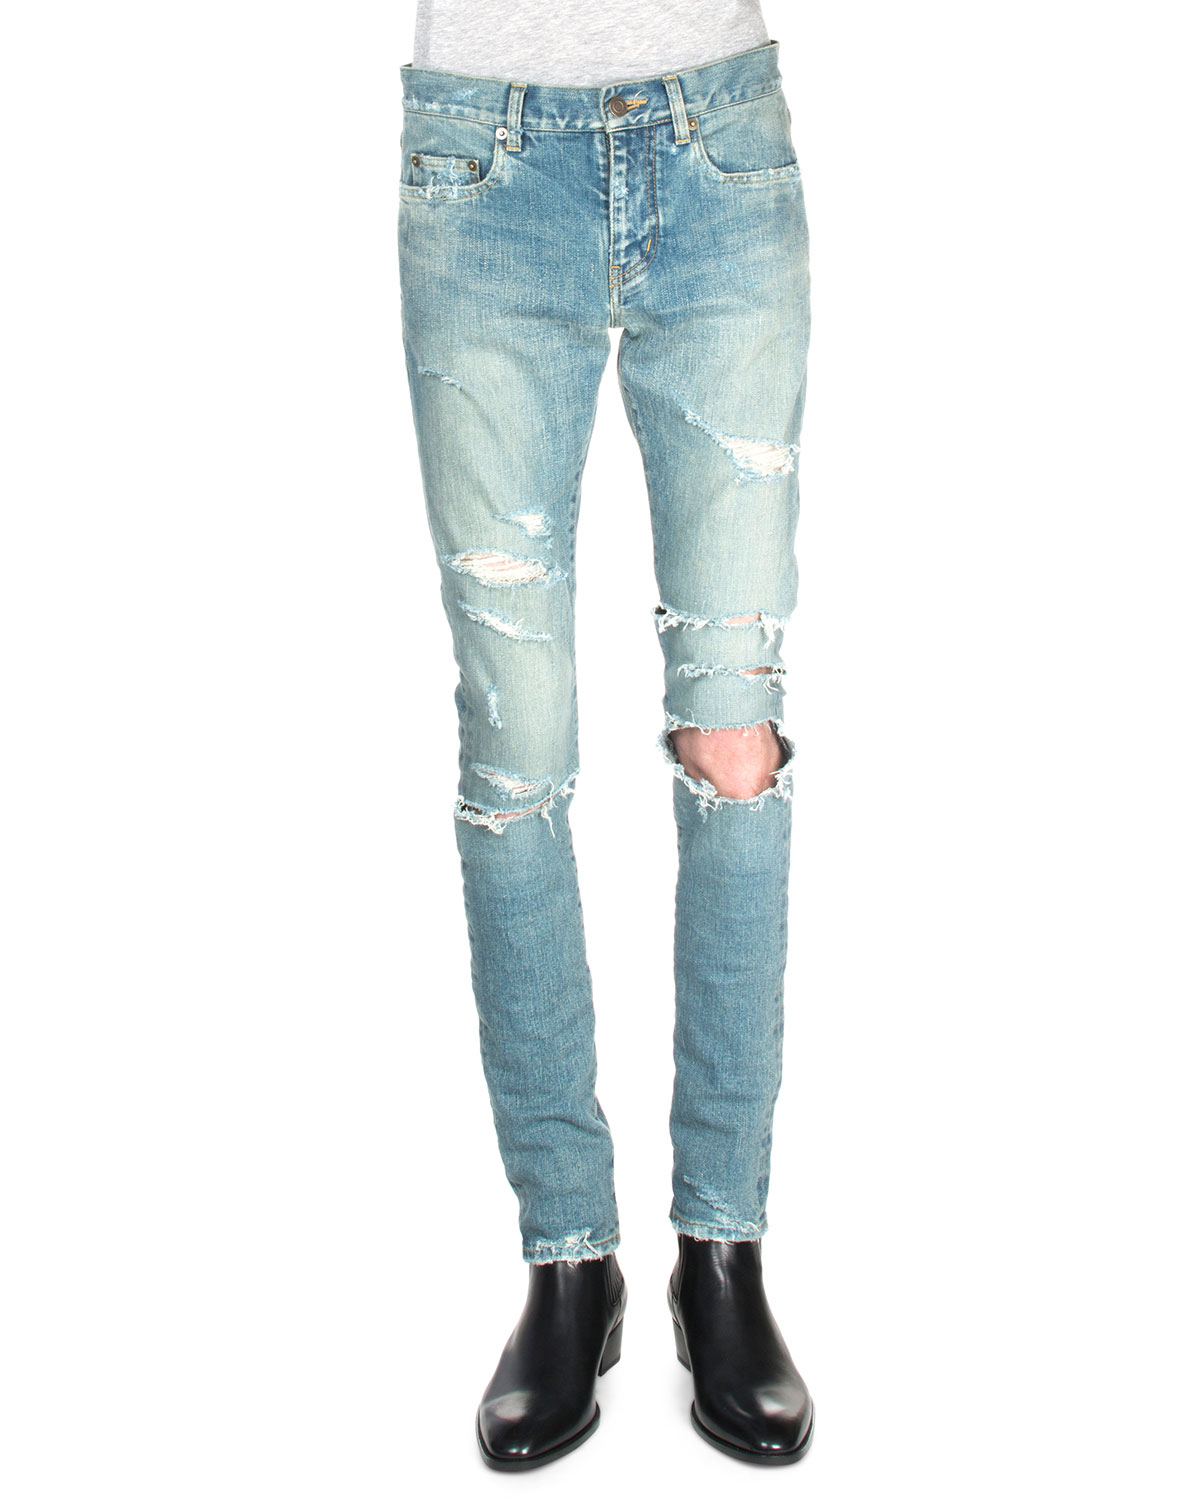 Saint Laurent Trashed Ripped Knee Denim Jeans In Blue For